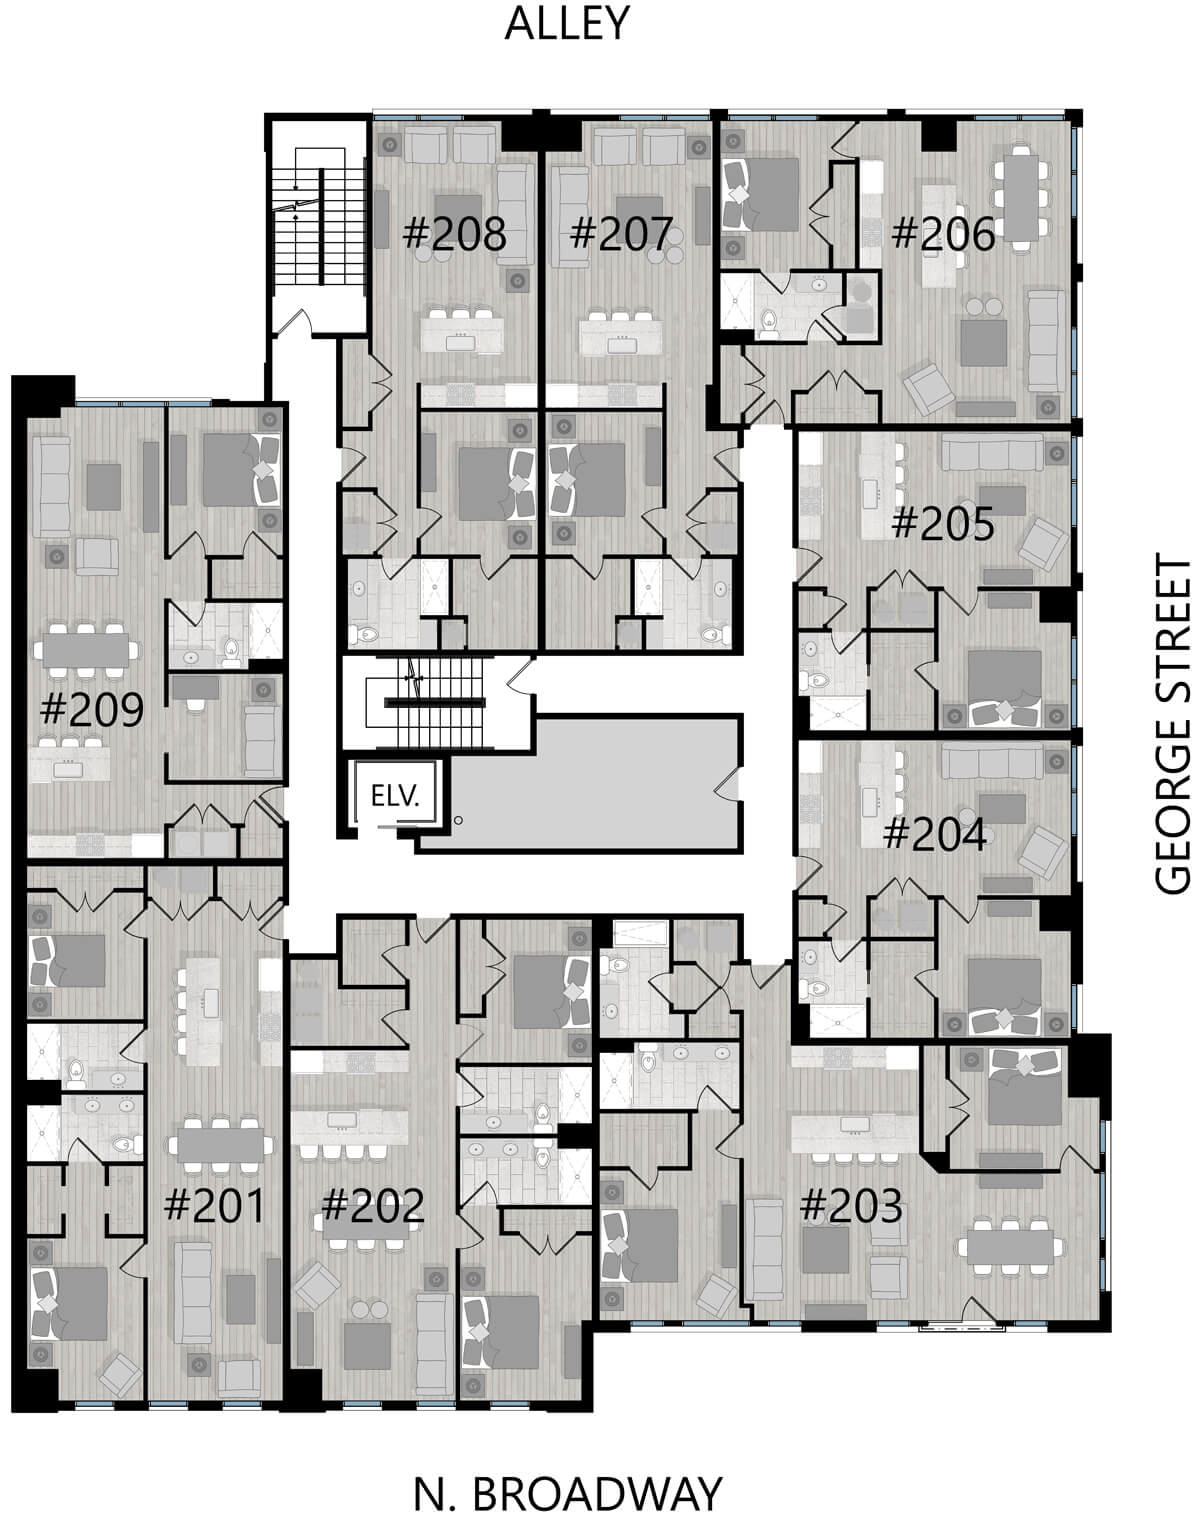 Second floor unit layout